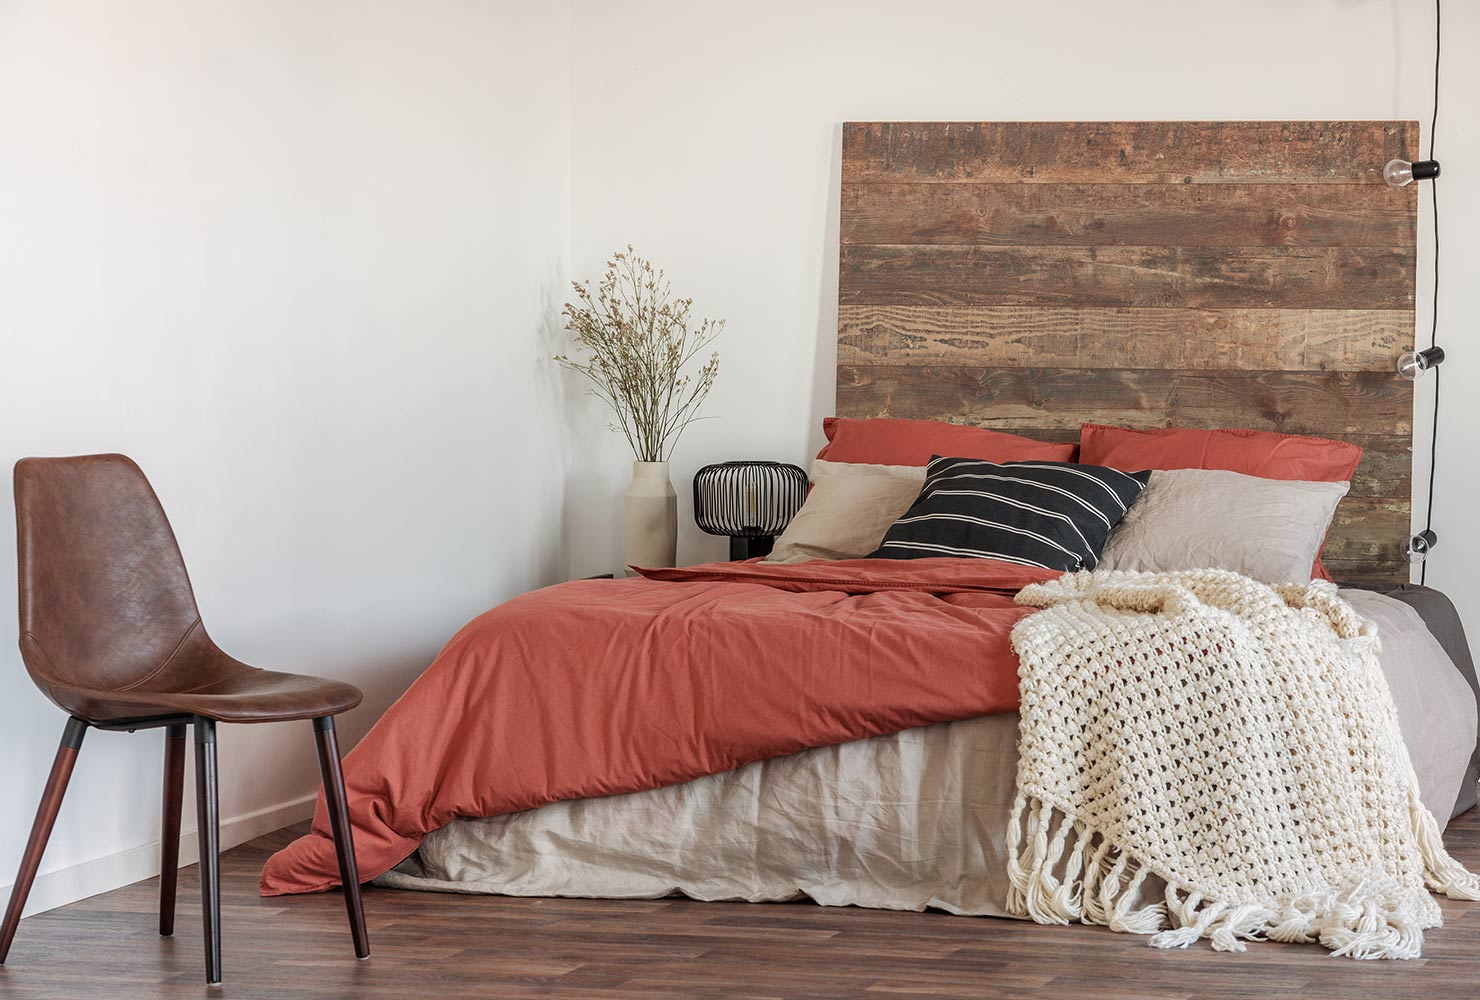 Rustic red bedding with wood headboard.